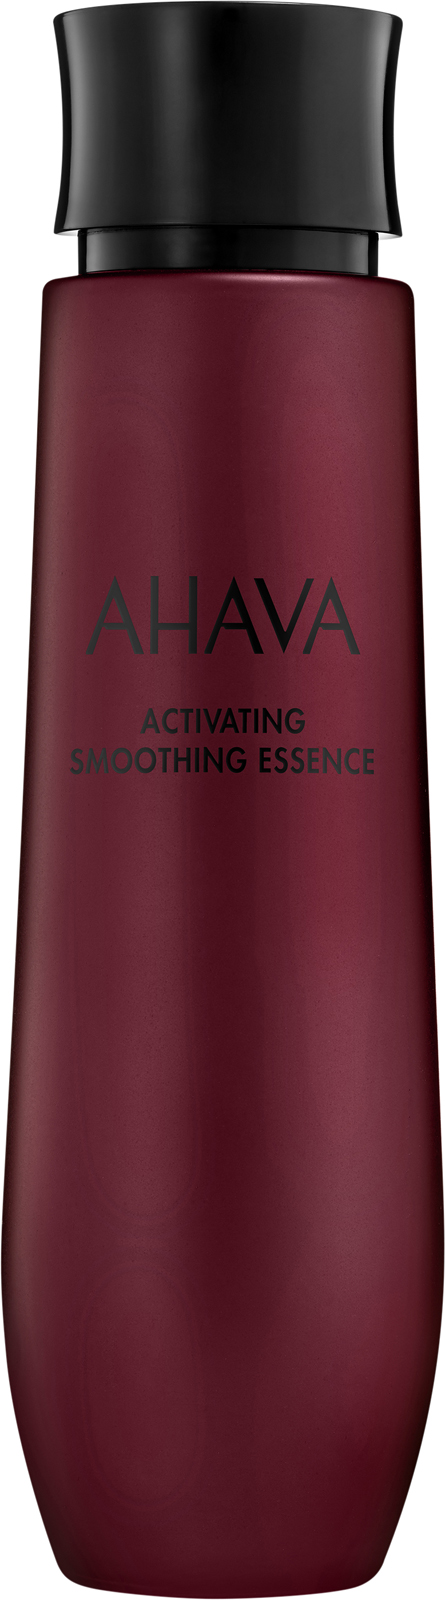 AHAVA - Apple of Sodom Activating Smoothing Essence 100 ml